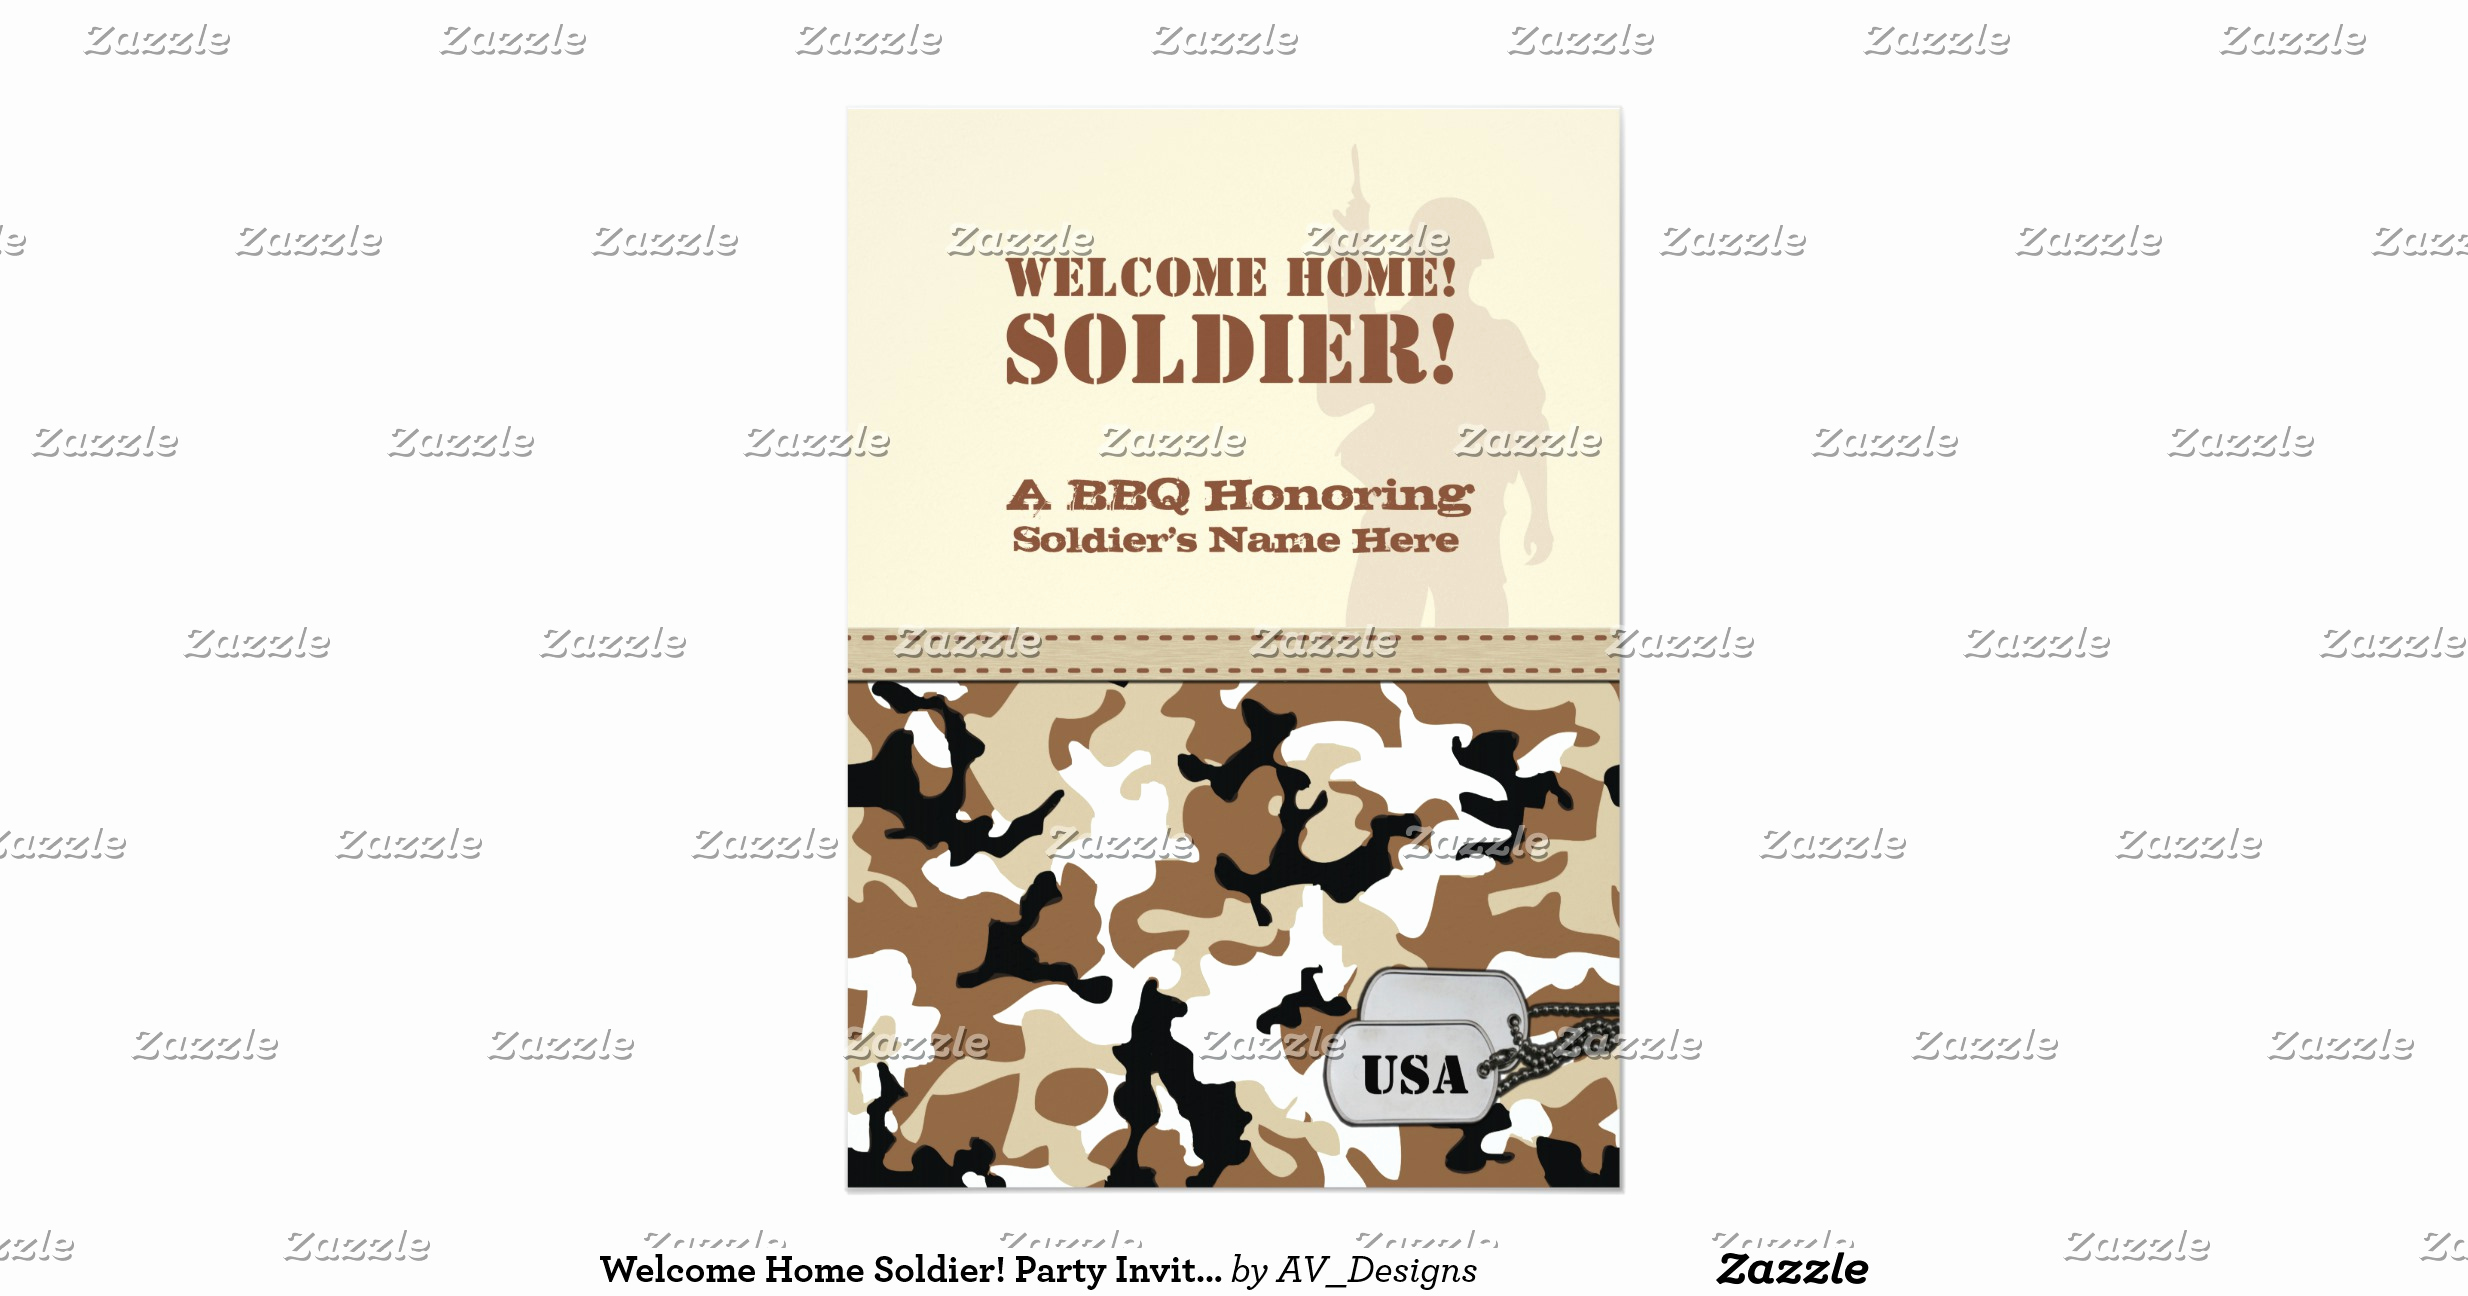 Welcome Party Invitation Wording Best Of Wel E Home sol R Party Invites W Wording